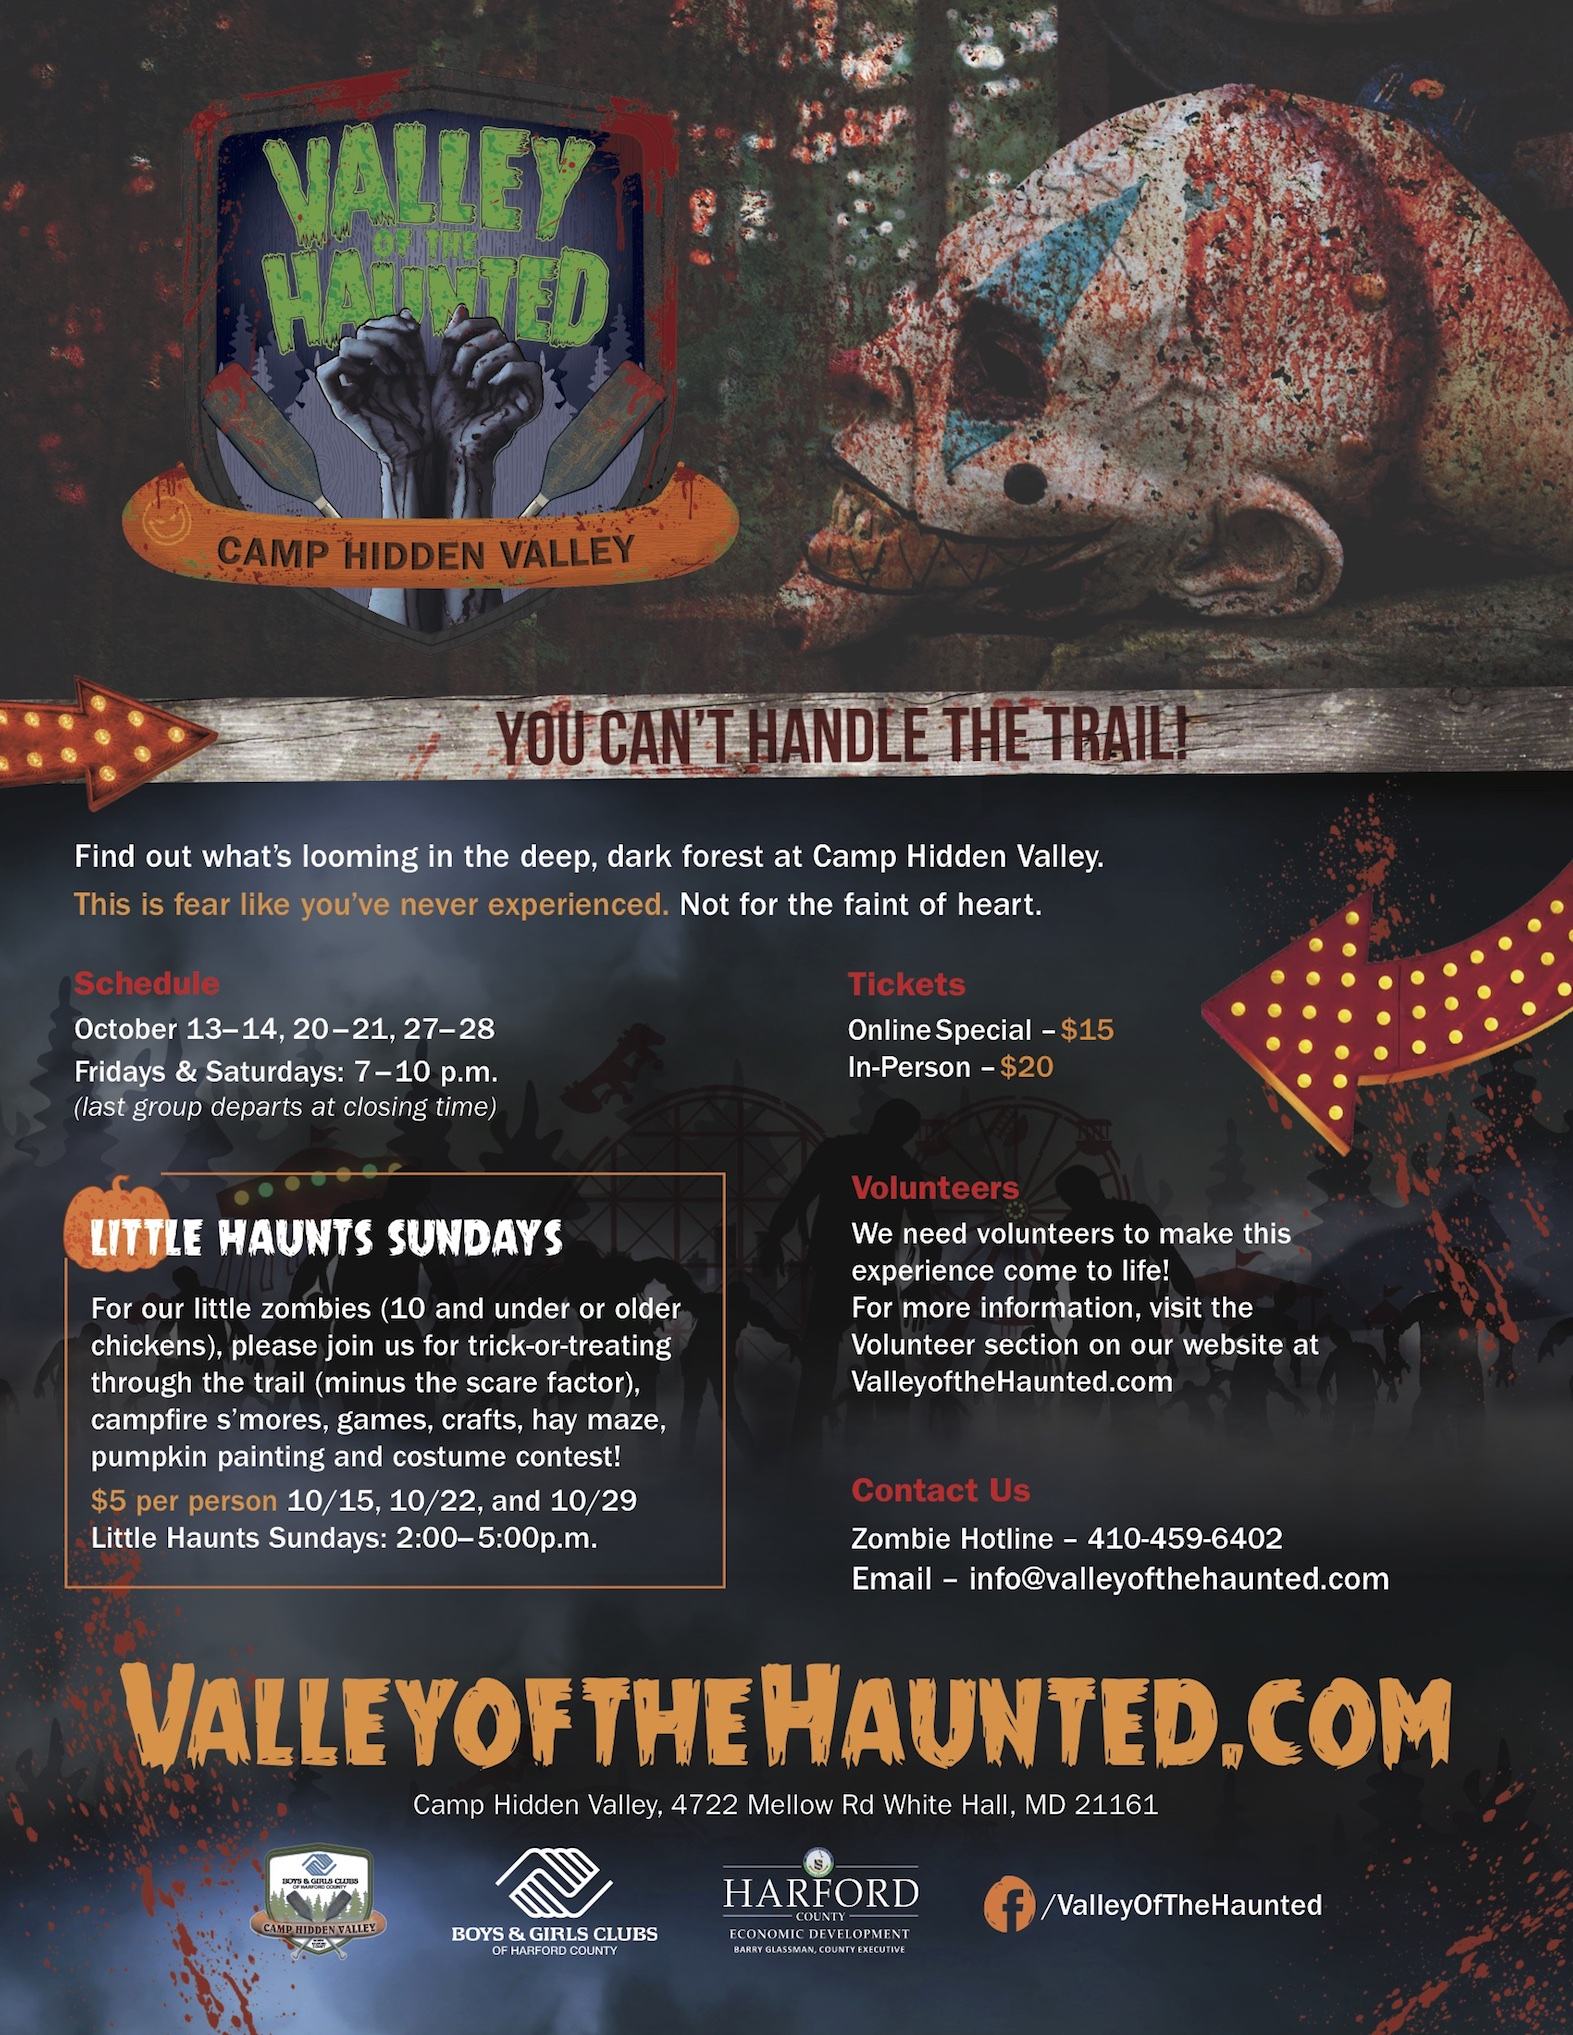 Valleyofthehaunted